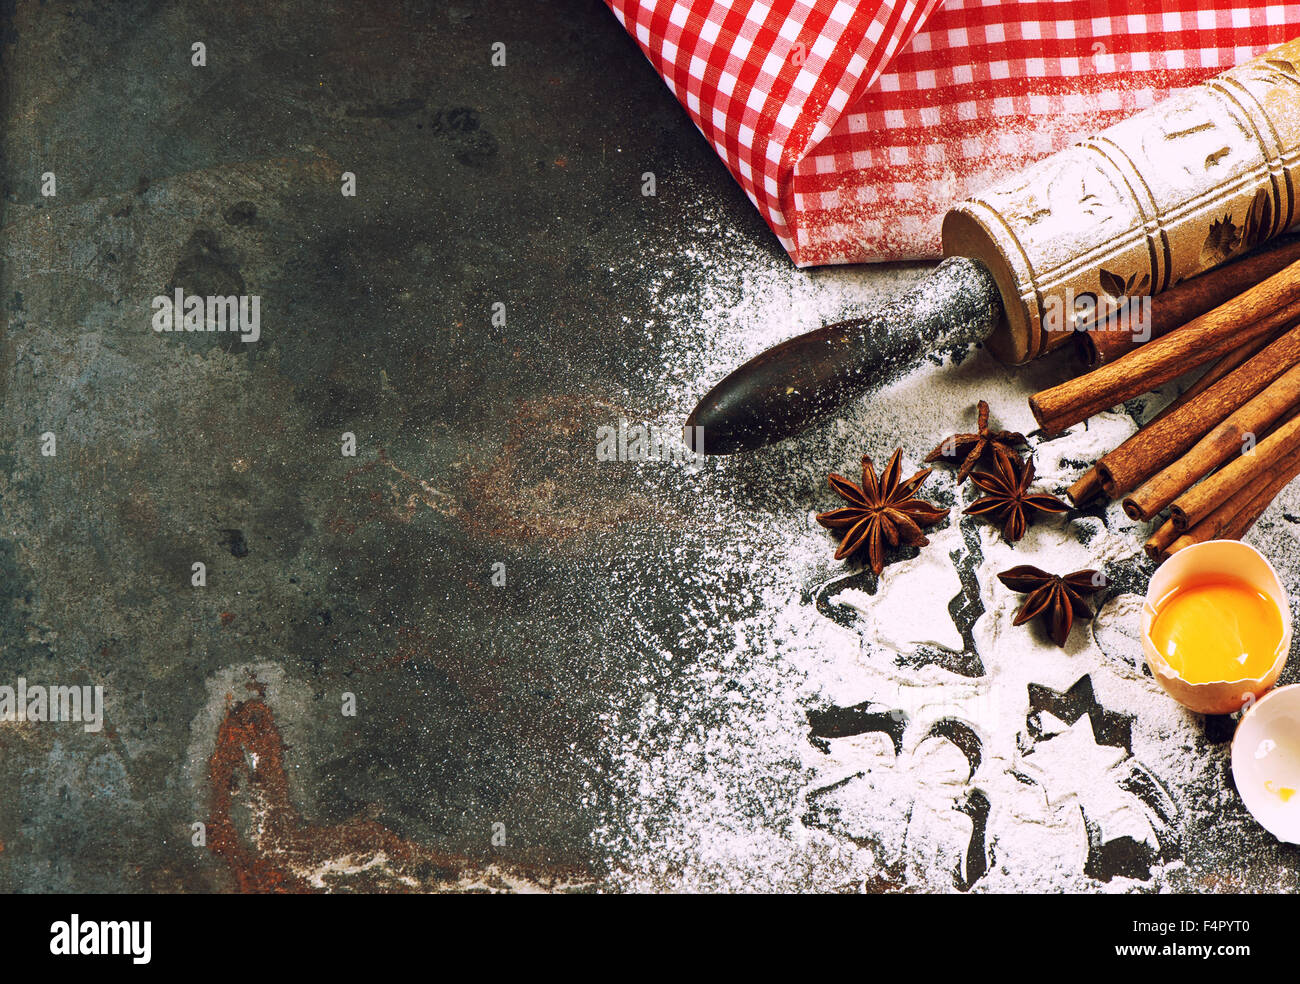 Baking ingredients and tolls for dough preparation. Christmas food. Vintage style toned picture - Stock Image